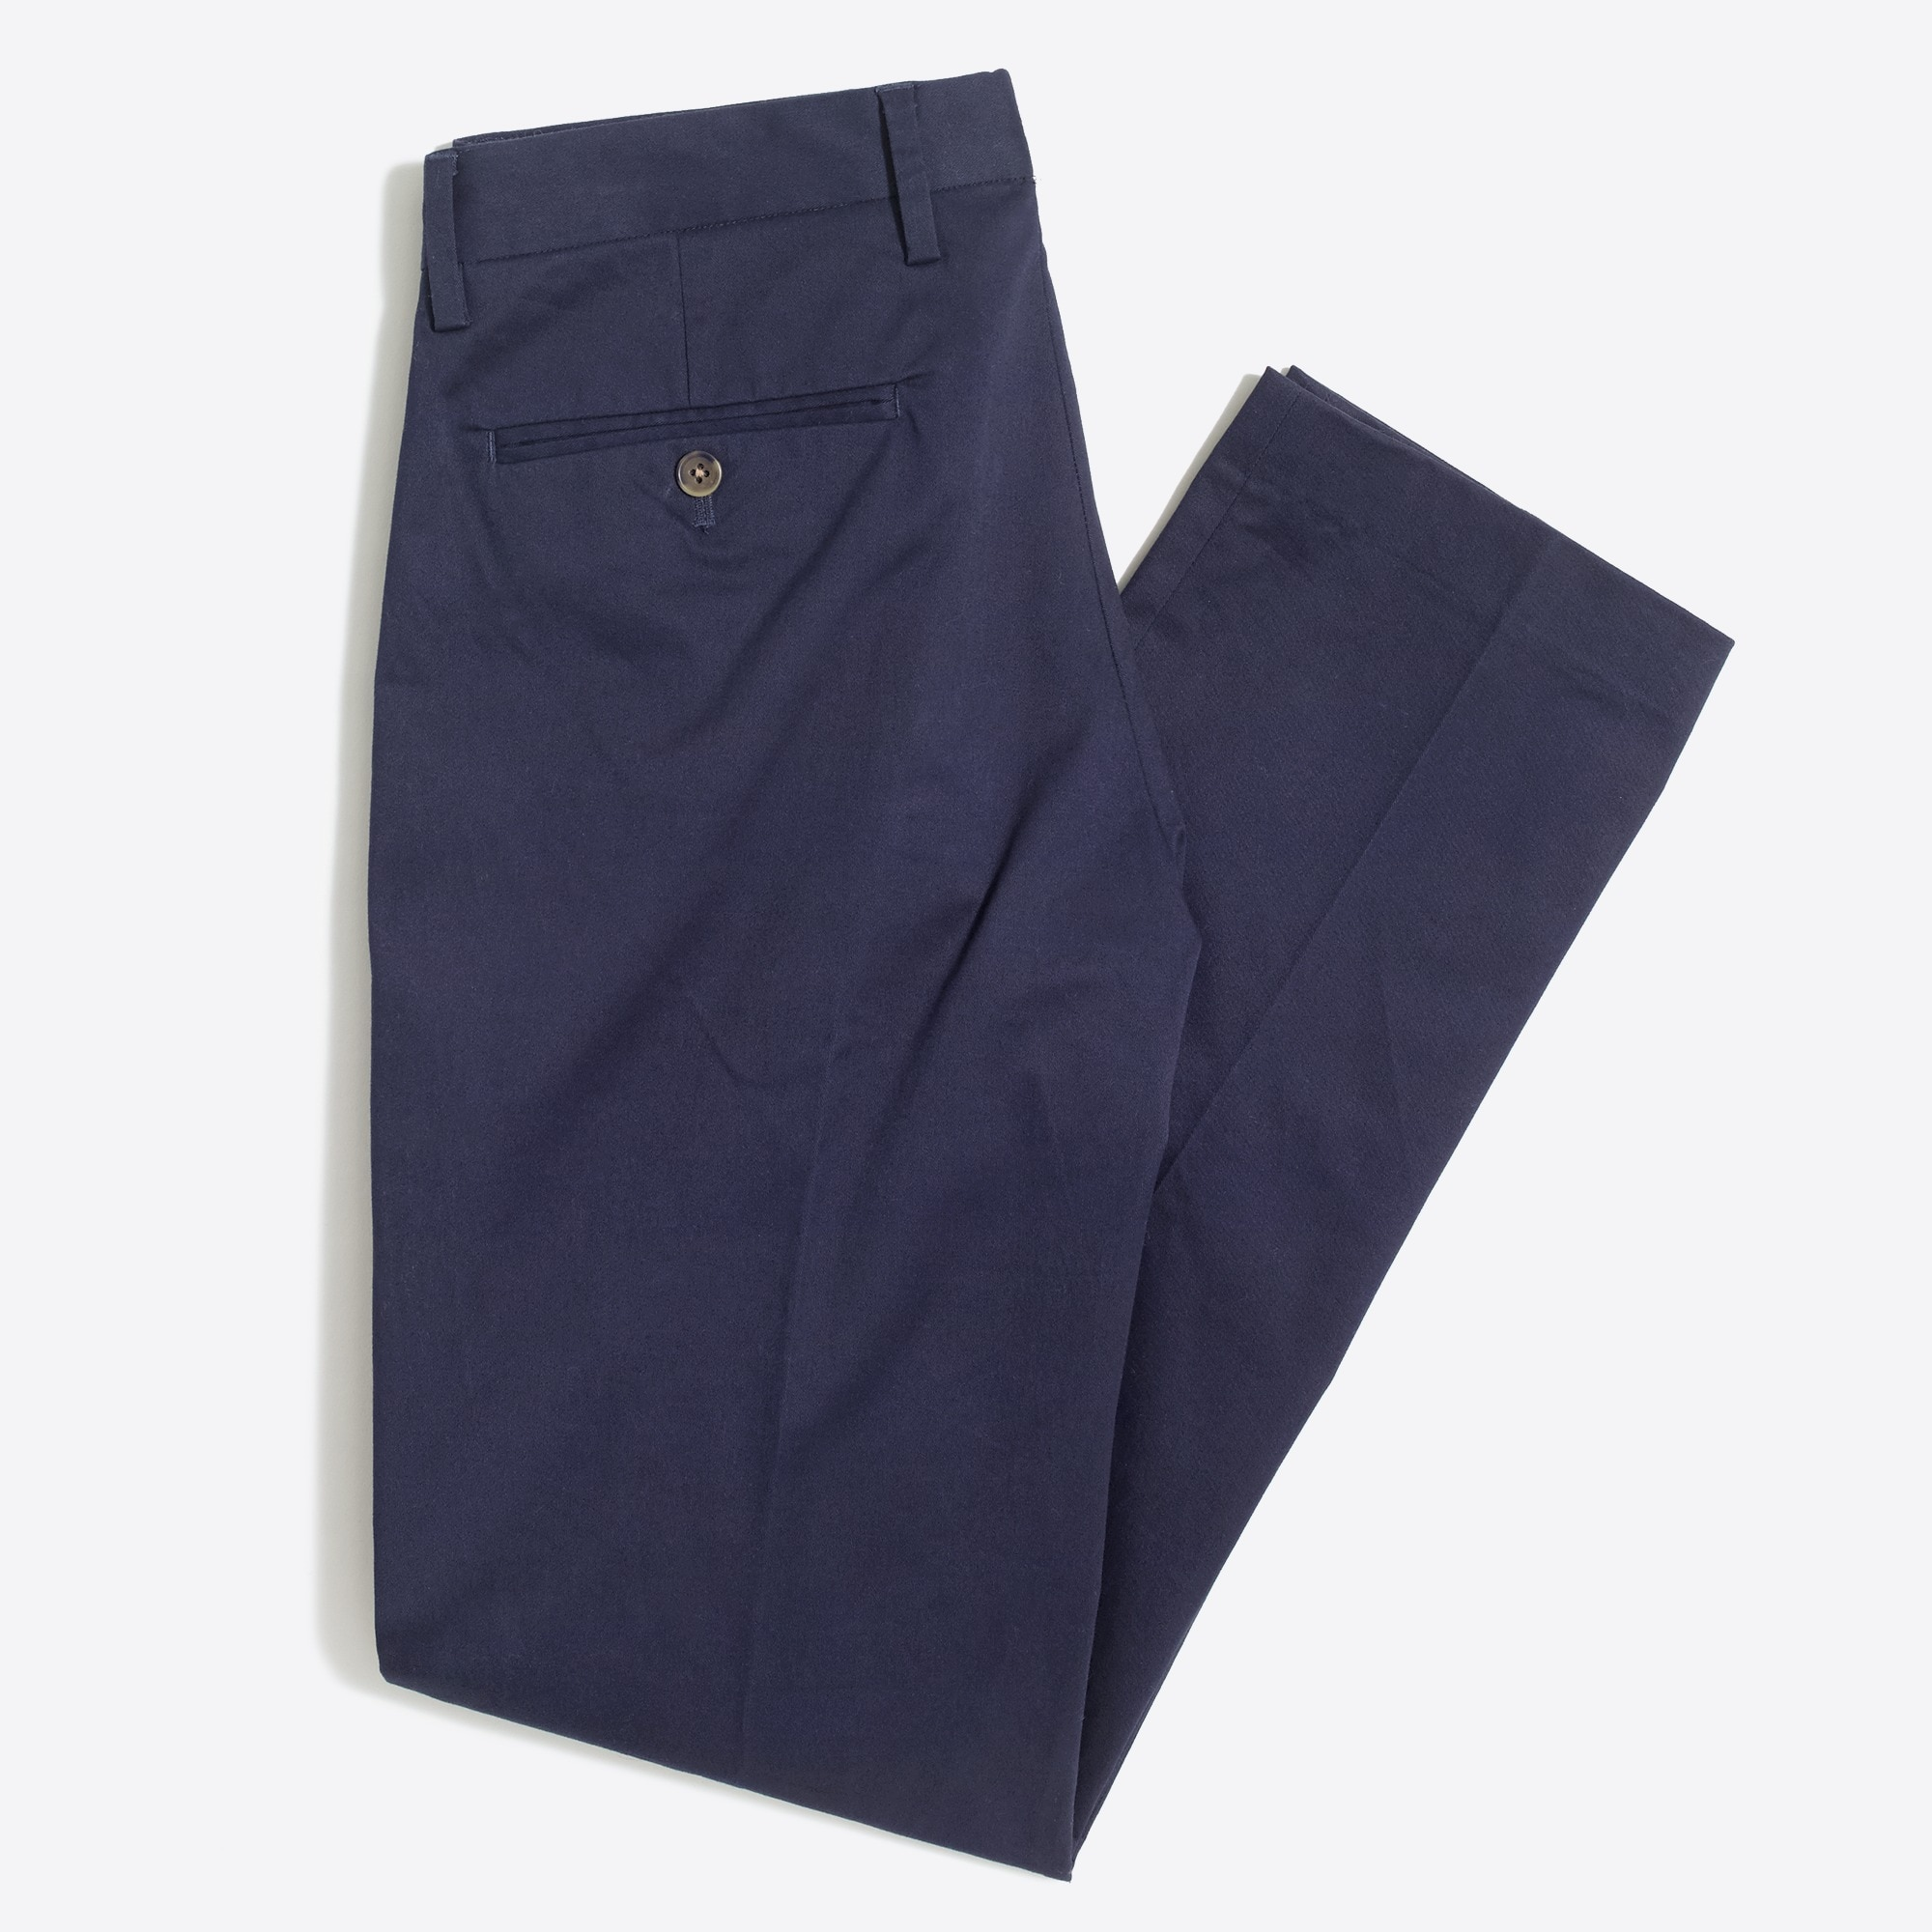 Image 3 for Flex Bedford dress chino